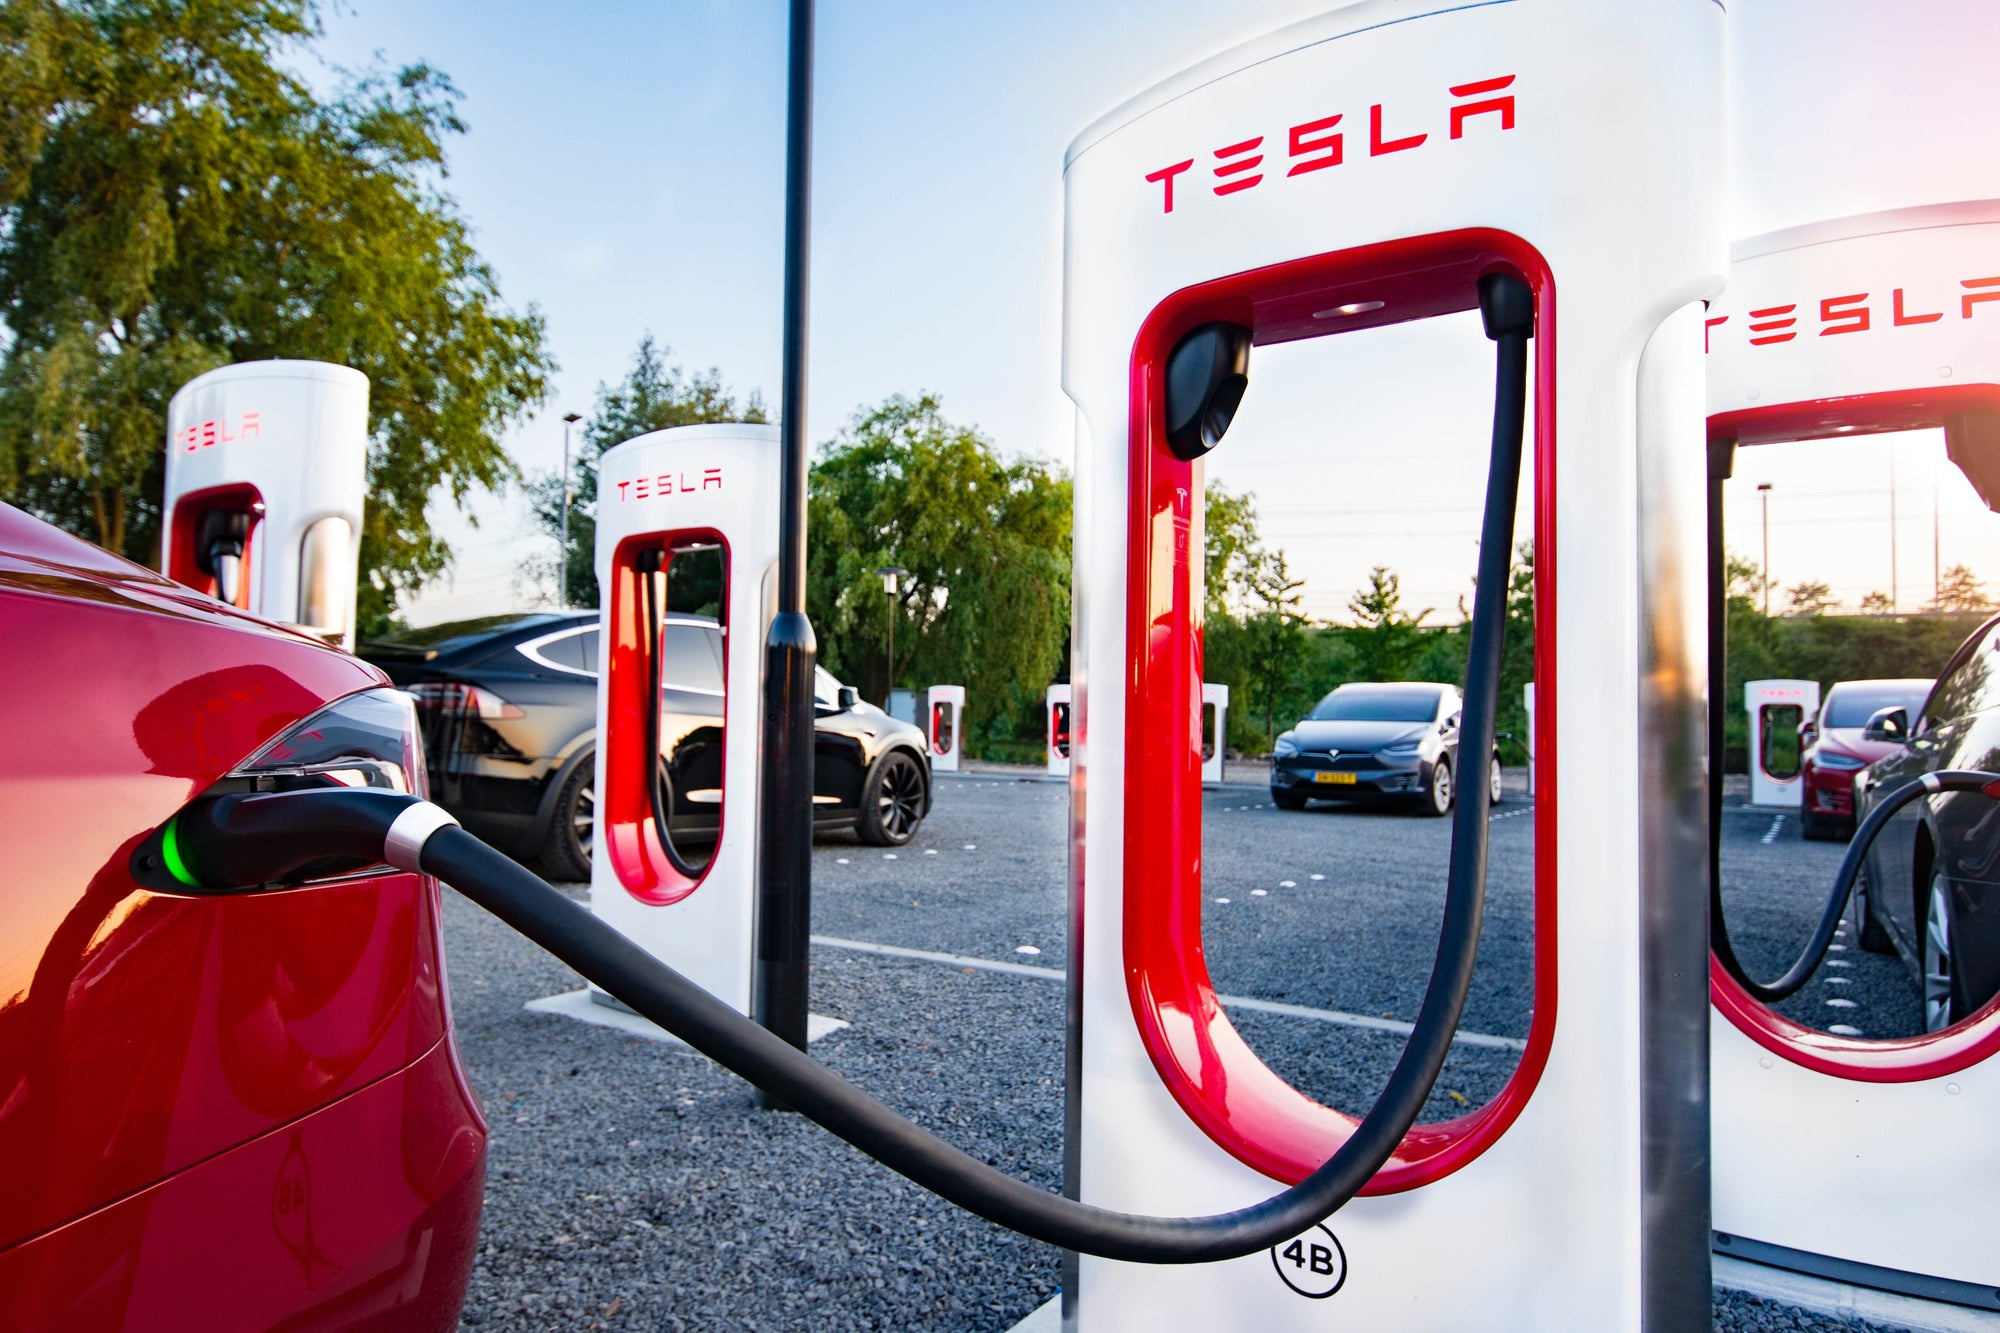 Tesla Supercharging Usage In NA Reaches Pre-C19 High, Hints Stronger Quarters Down The Road